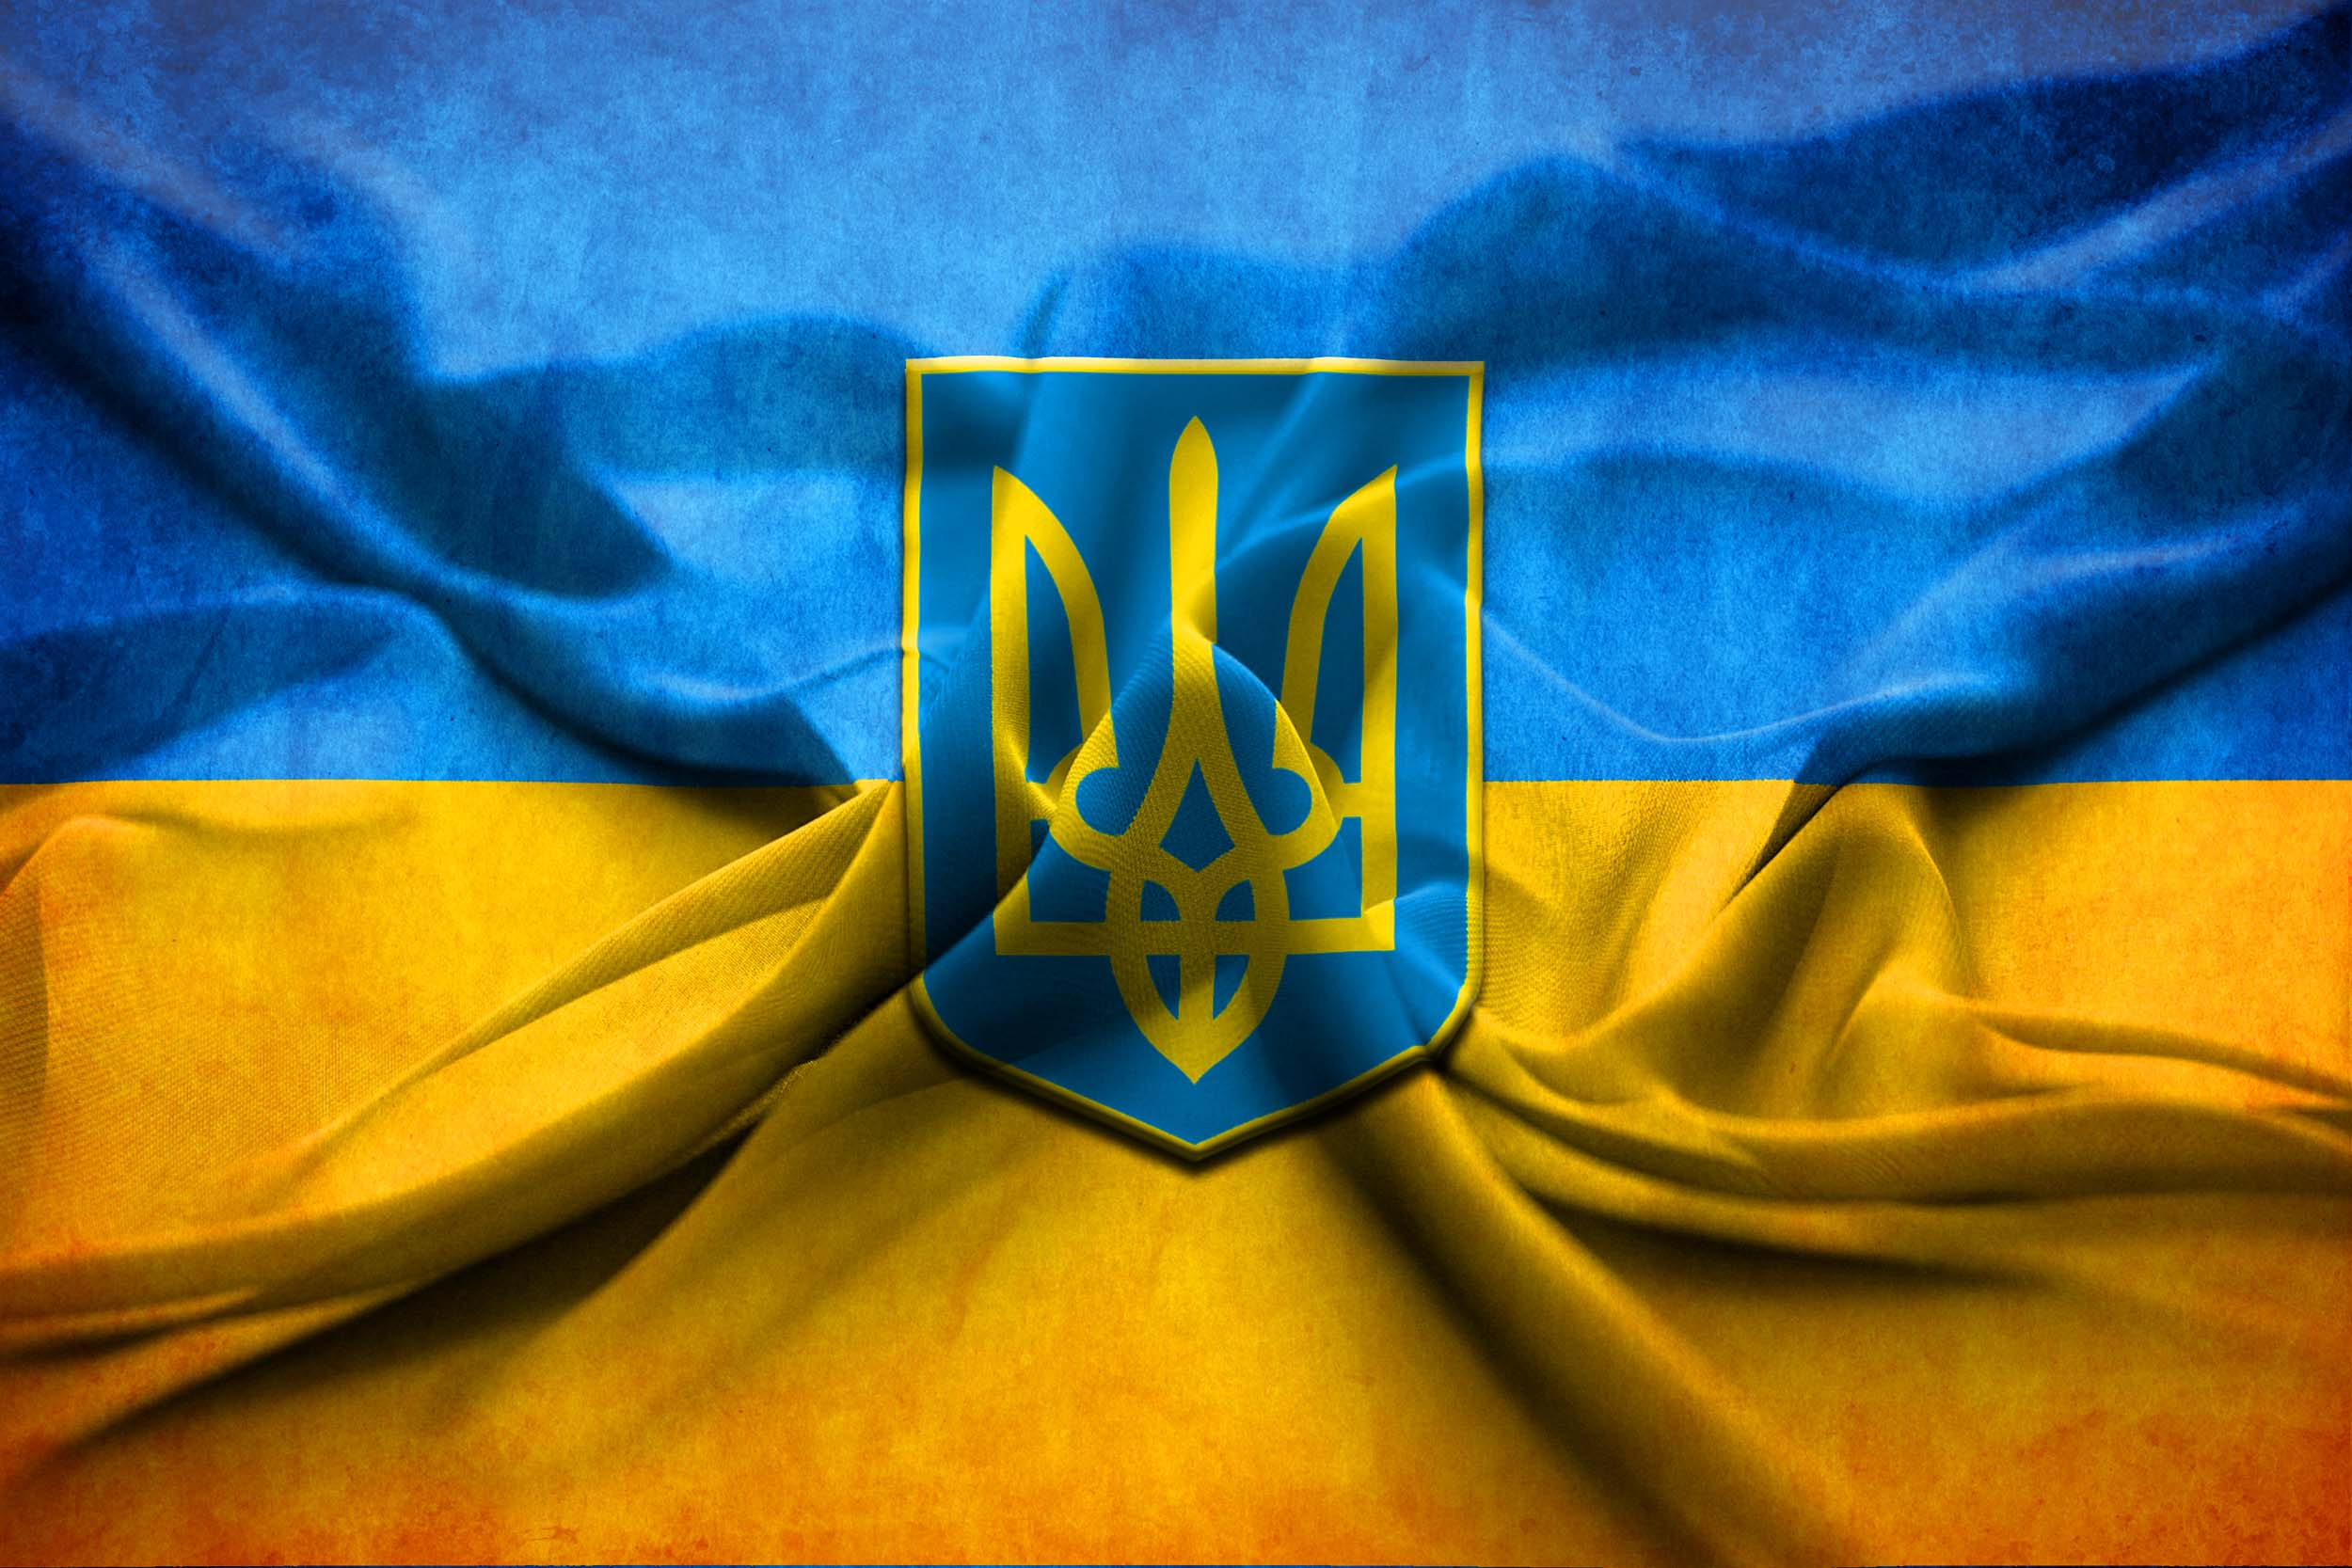 Stylized Ukrainian Flag with crest